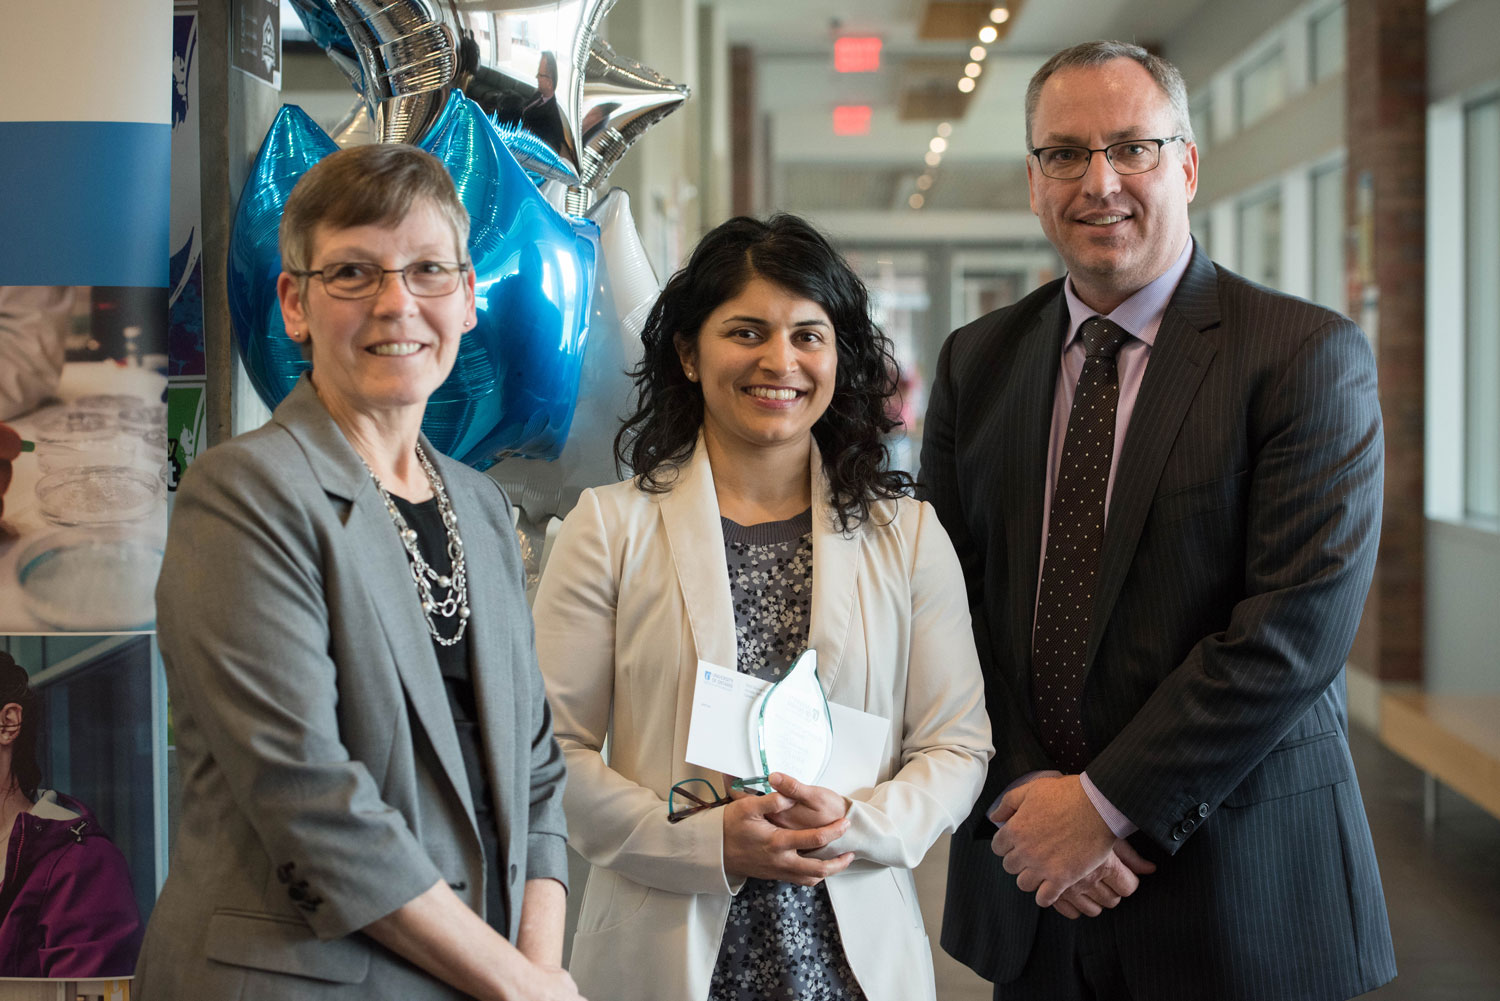 Shilpa Dogra, Teaching Innovation Award winner, poses with Drs Lori Livingston and Steven Murphy. ${altNumber}